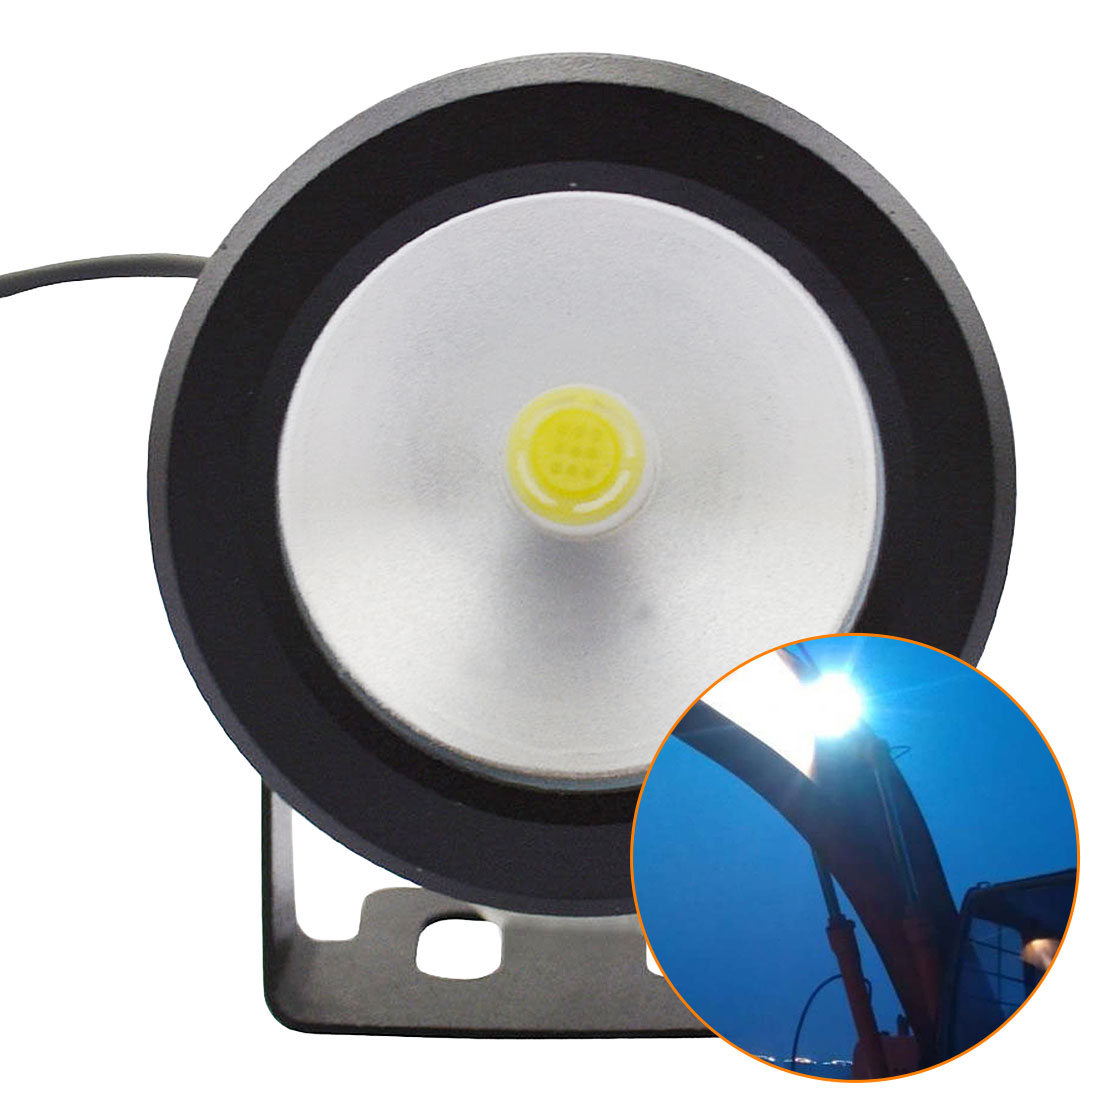 Original Waterproof Ip65 10w Led Swimming Pool Light Underwater Landscape Lamp Warm/cold White Ac/dc 12v 900lm Strong Packing Led Lamps